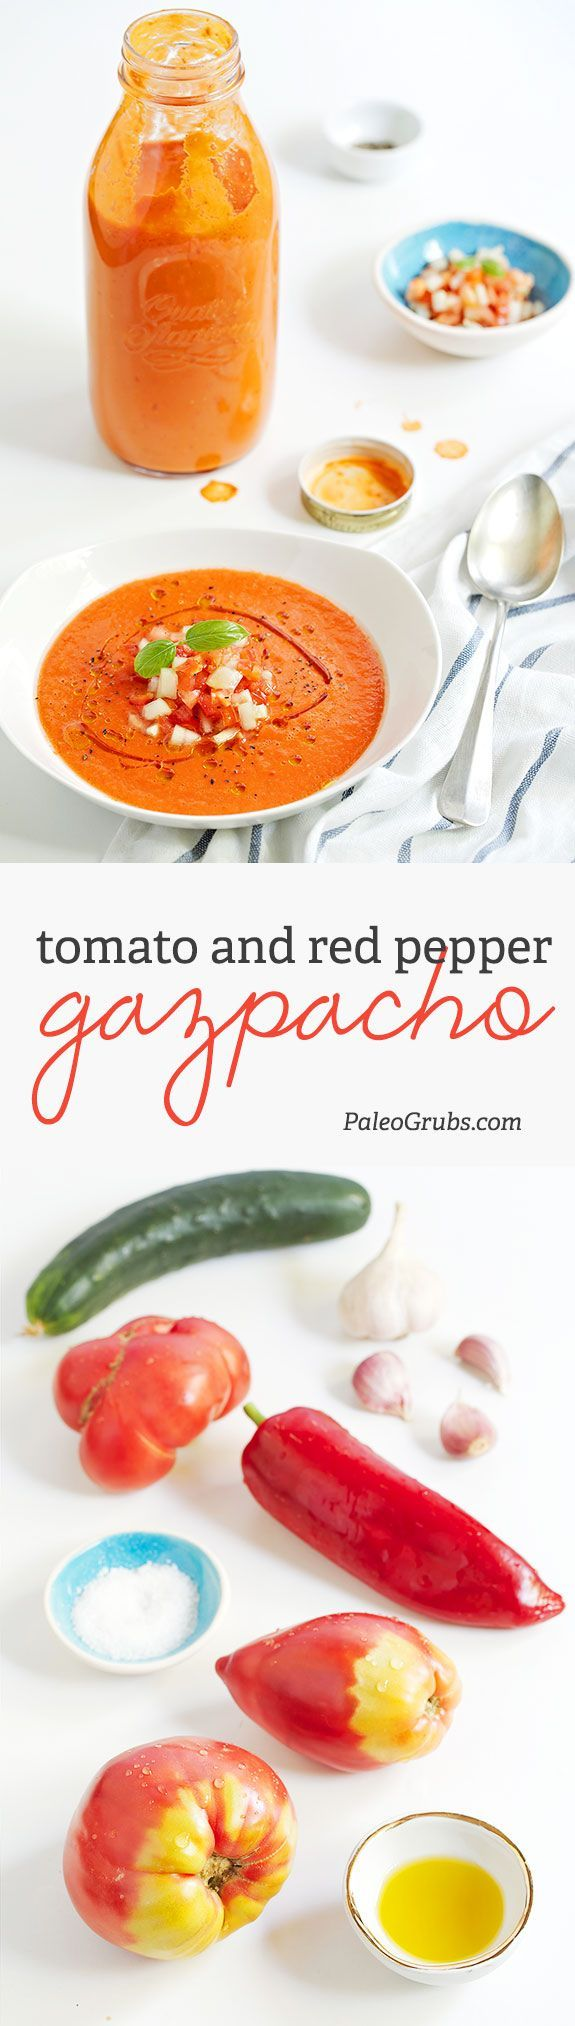 You won't believe the incredible flavor of our gazpacho! Bursting with fresh tomatoes and cucumbers and garnished just right, it's the perfect answer to hot summer temps.